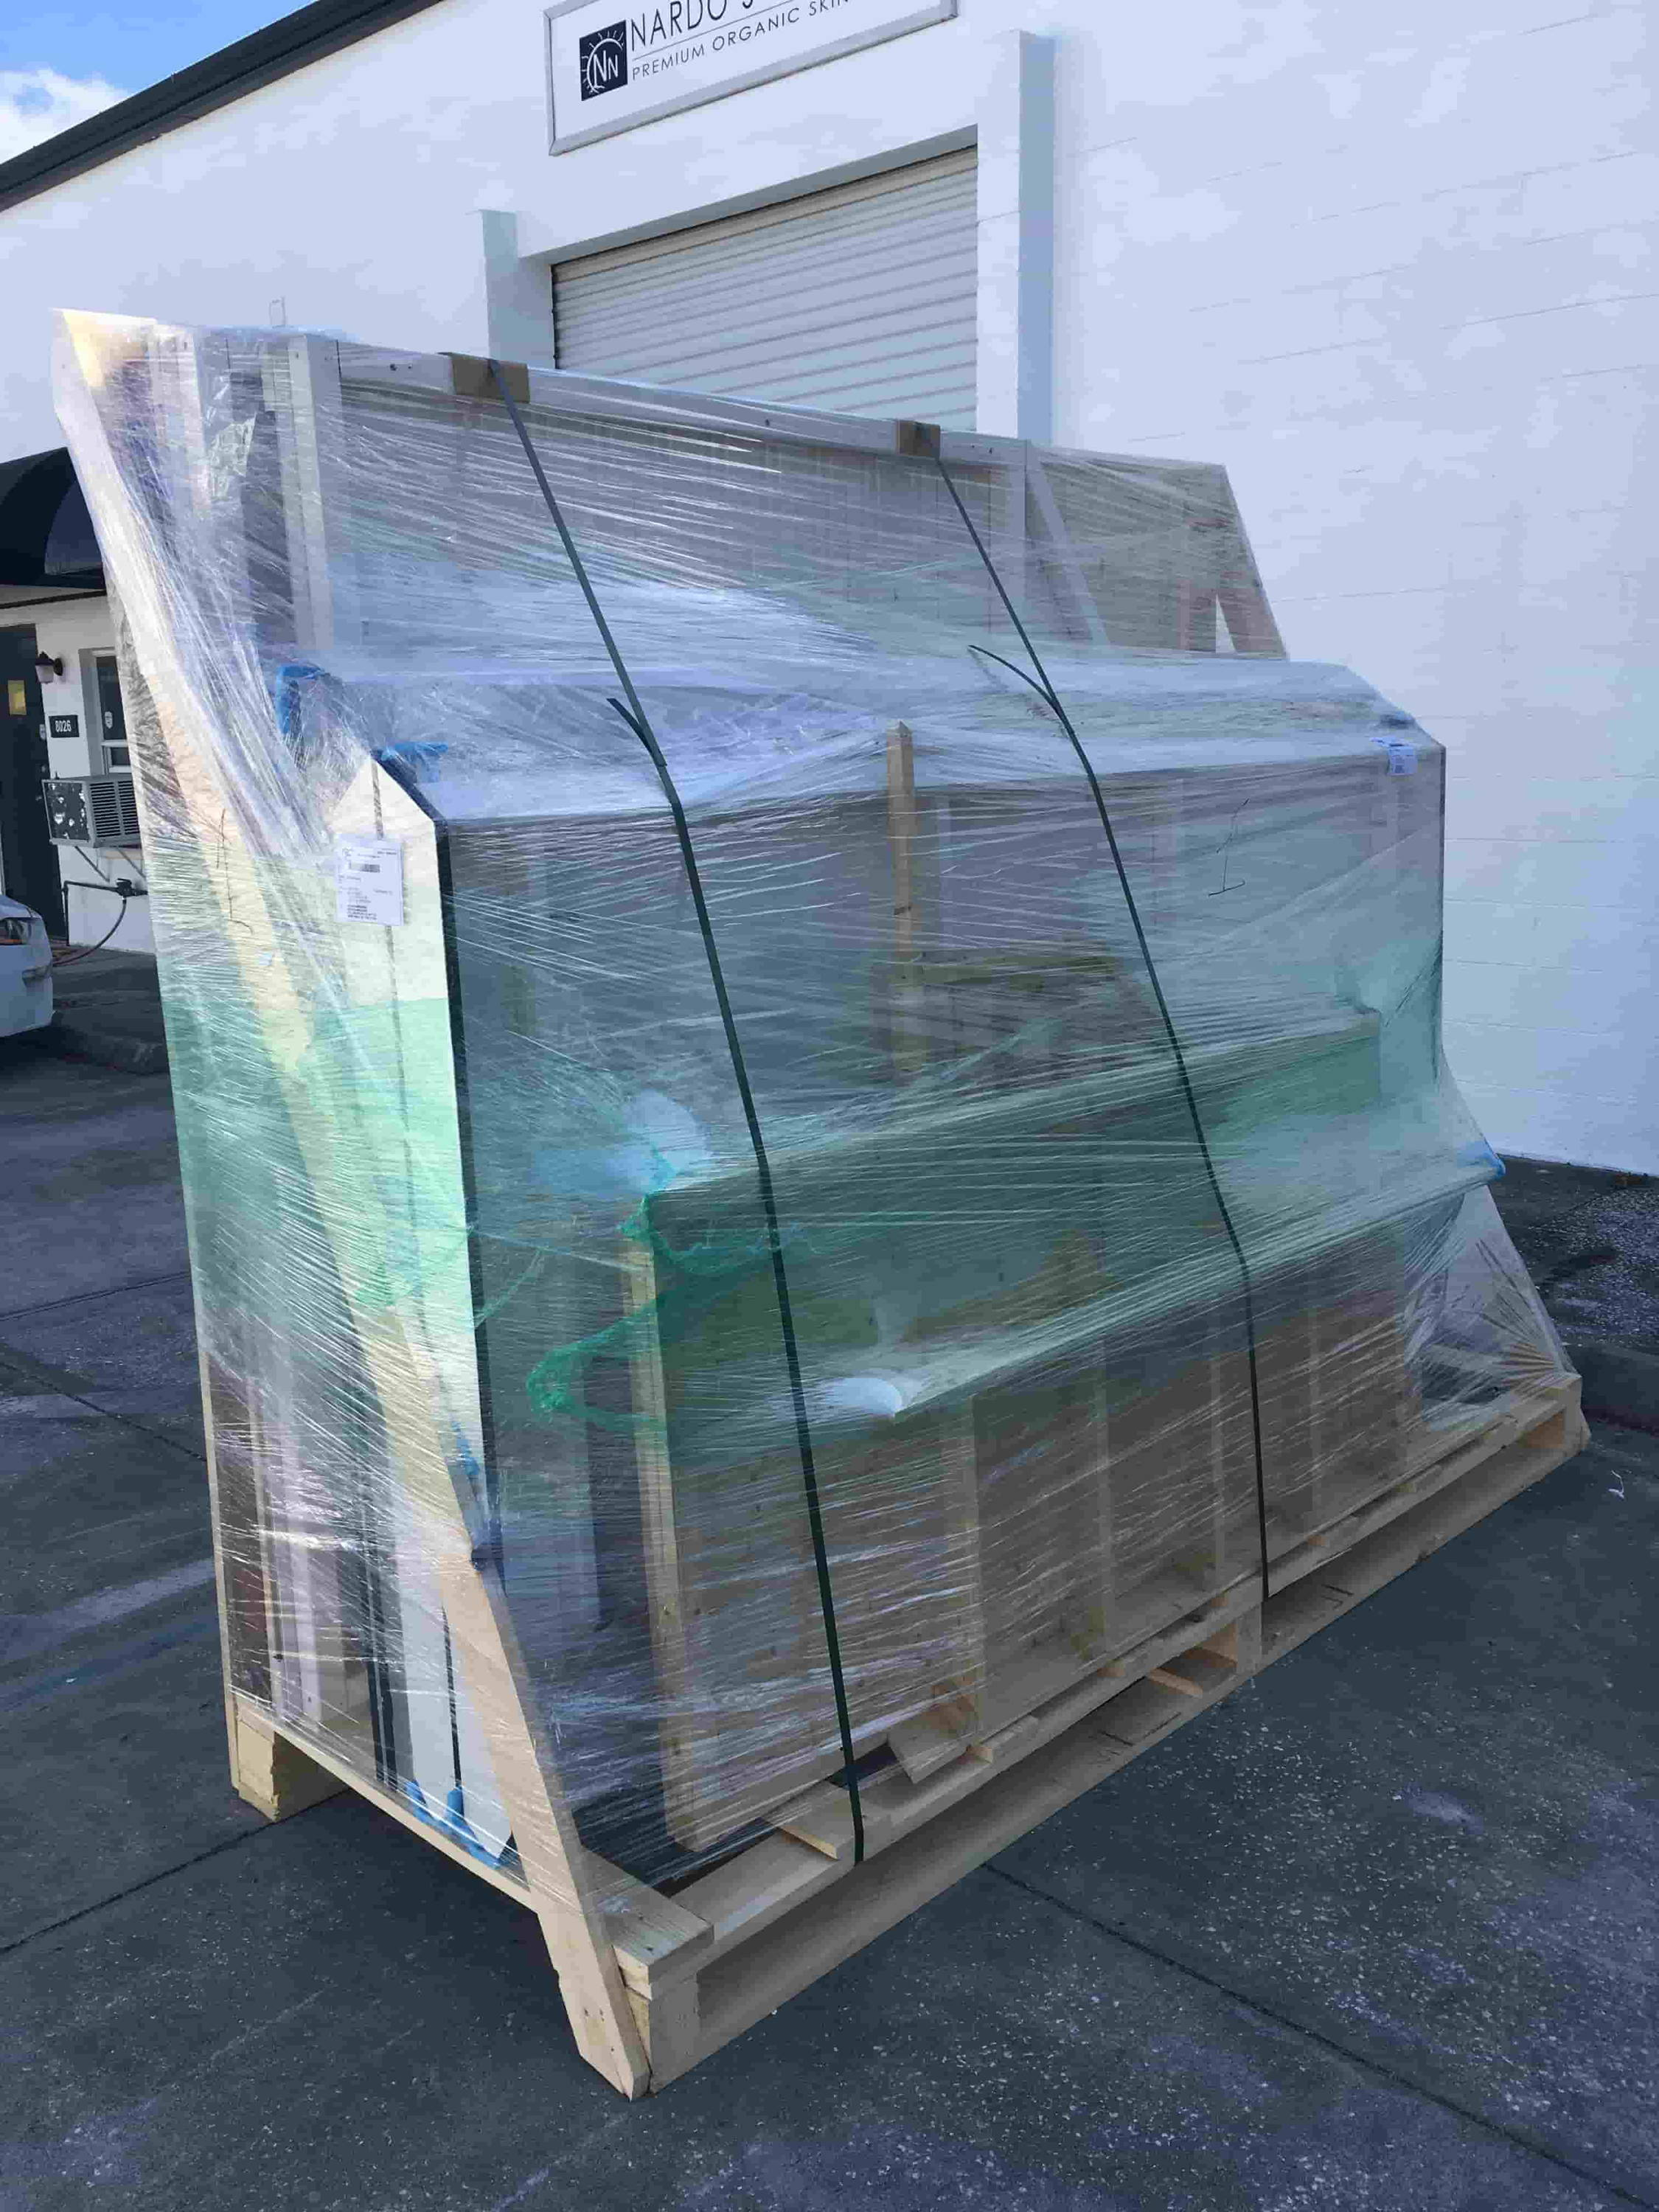 Package of a kids playhouses ready for shipment